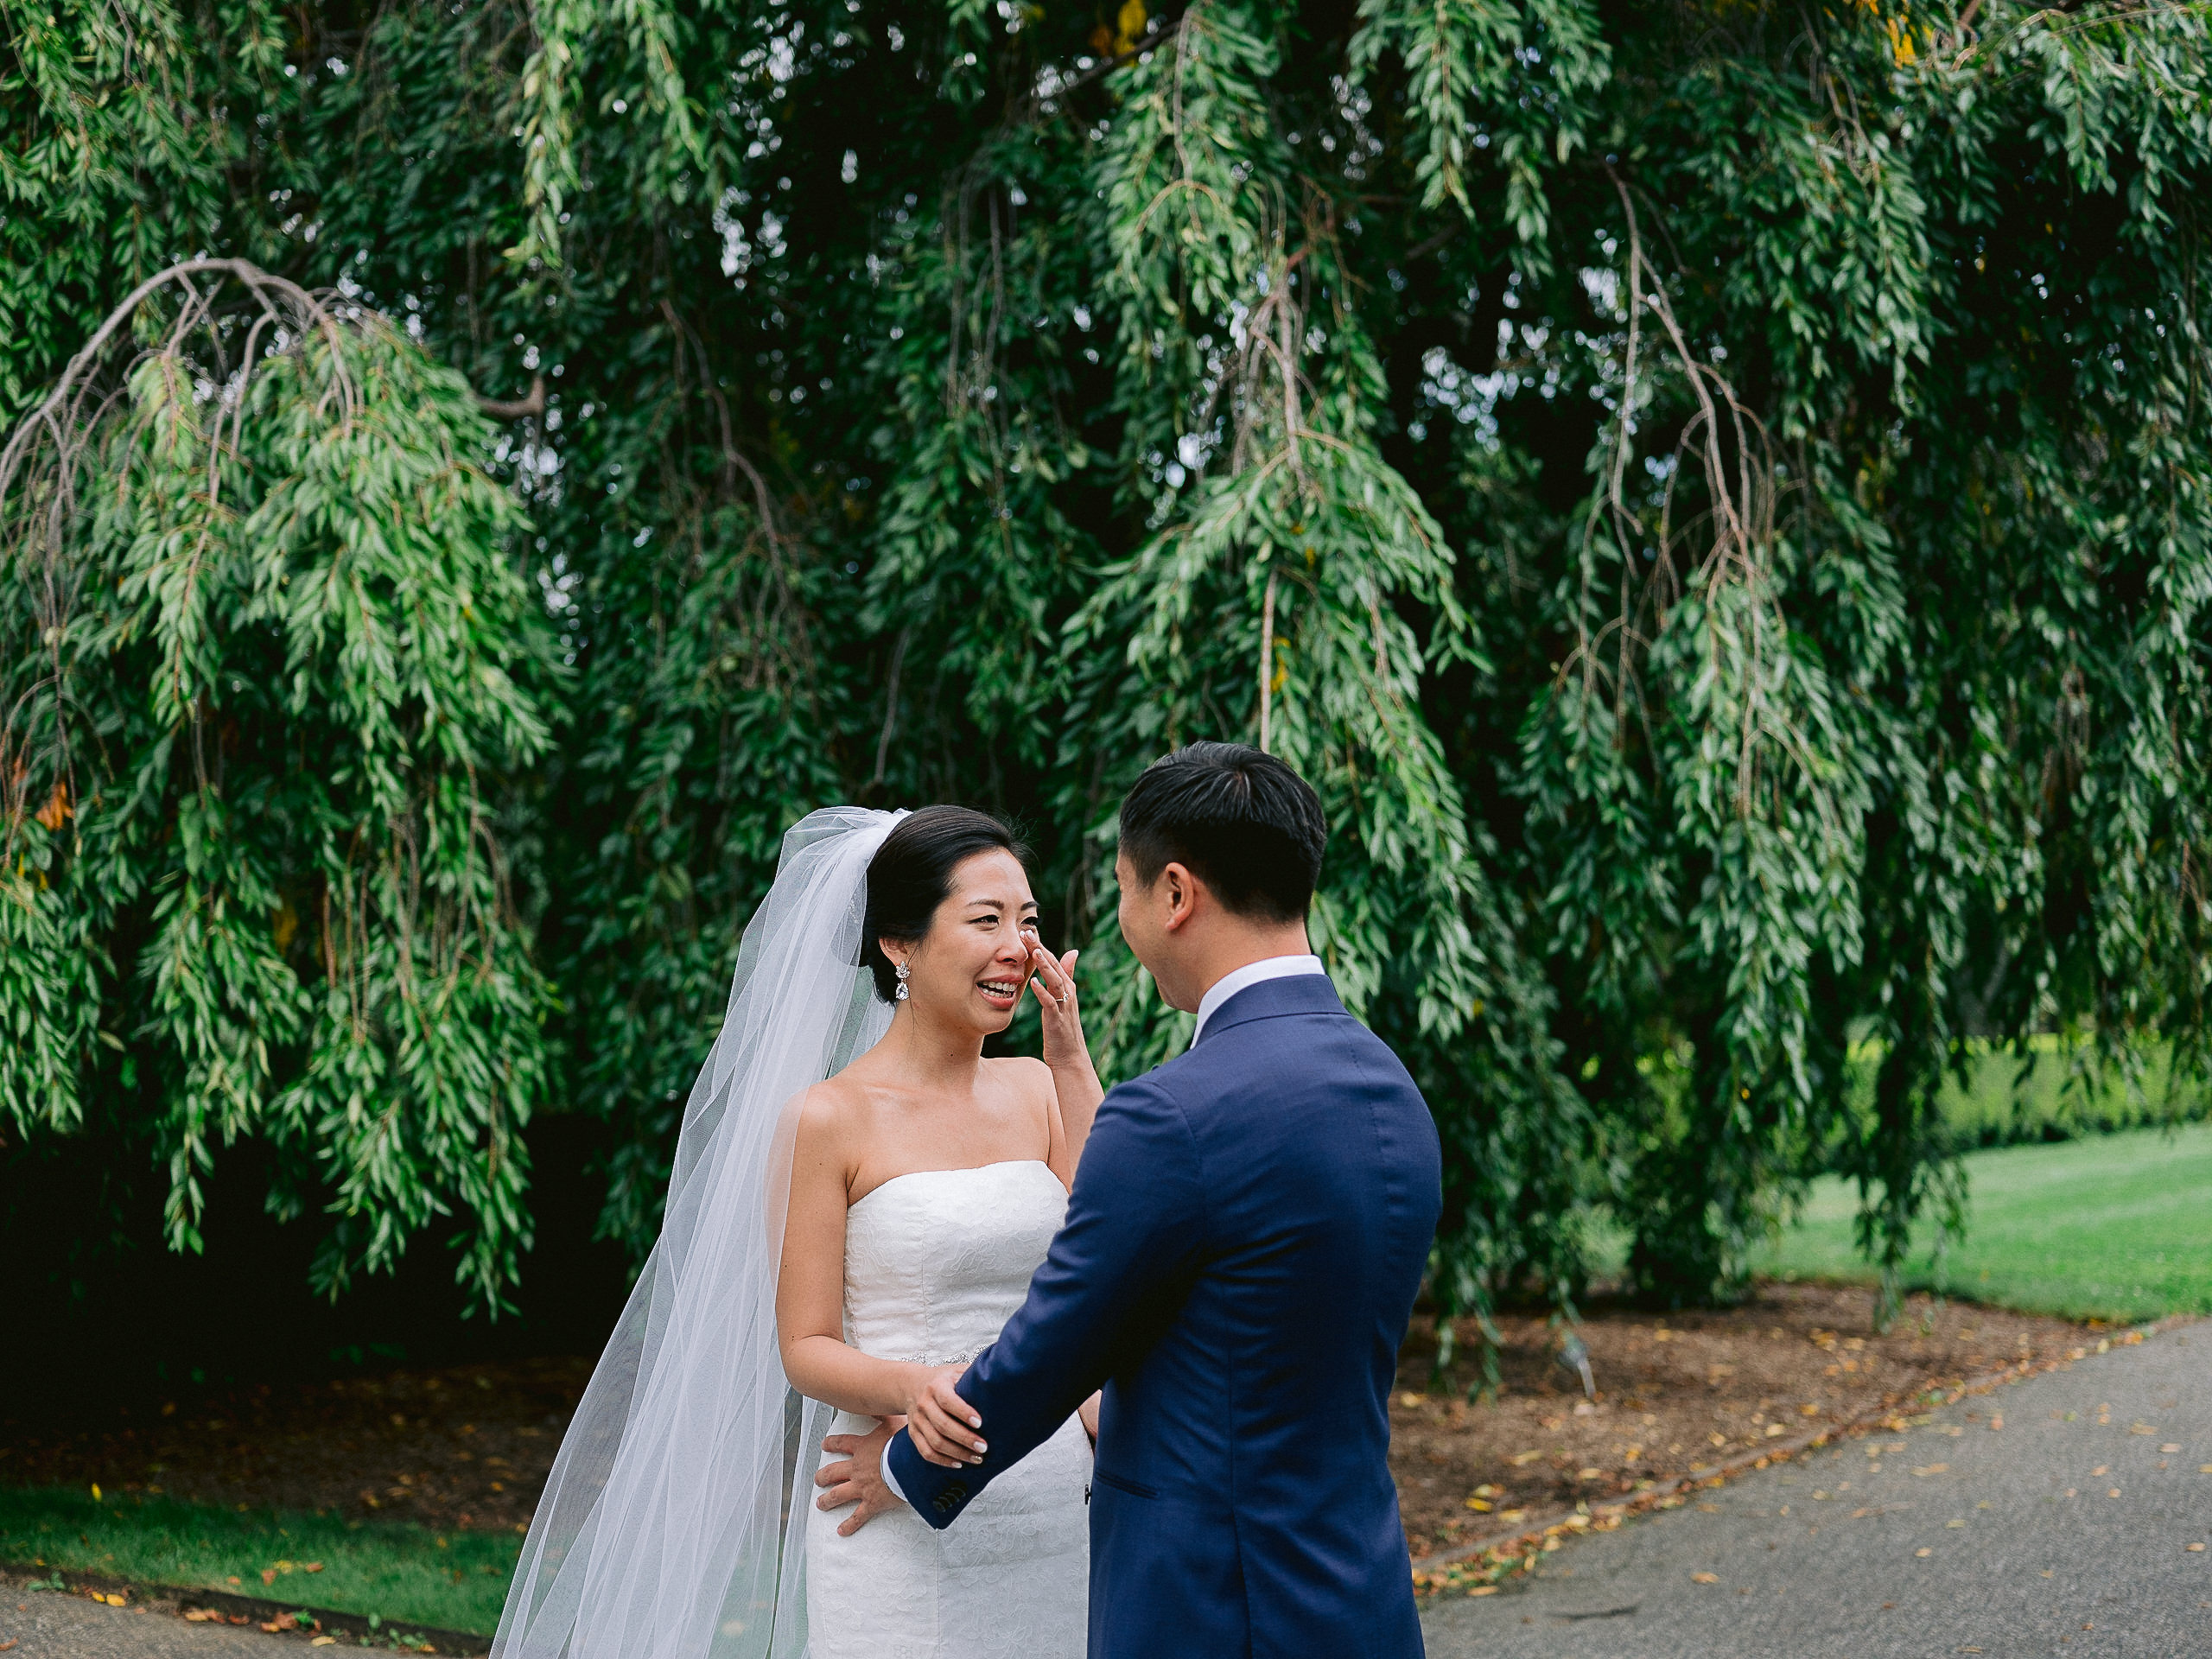 Best-New-York-Botanical-Gardens-Wedding-Photographer-44